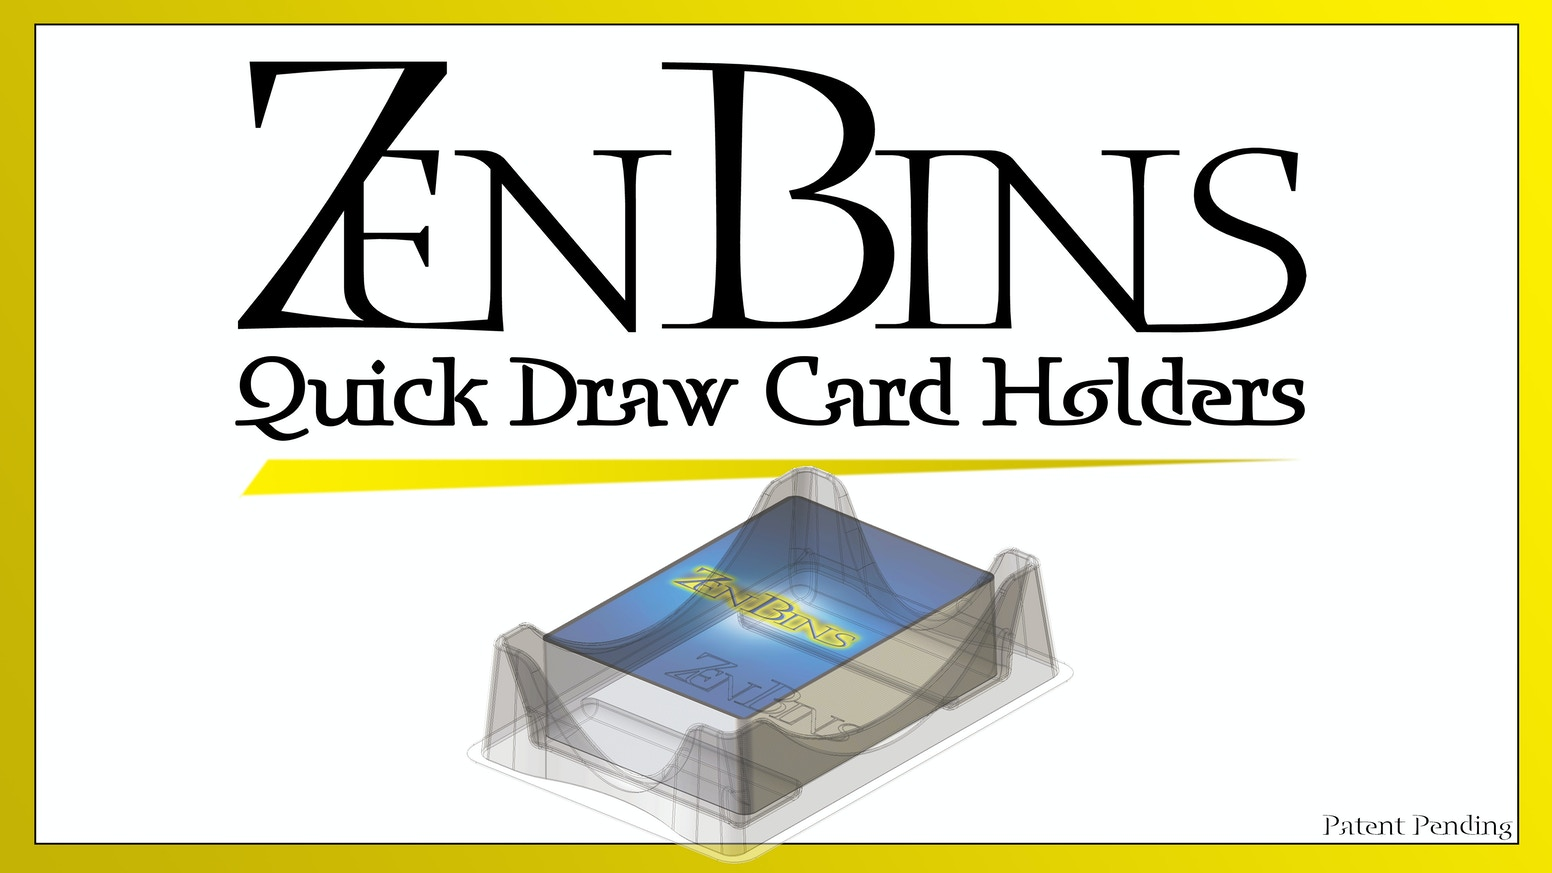 Playable Deck Holders - Easy Draw Standard & Mini American Cards.  Thick Plastic to Safely Transport Decks and Organize Game Boxes.